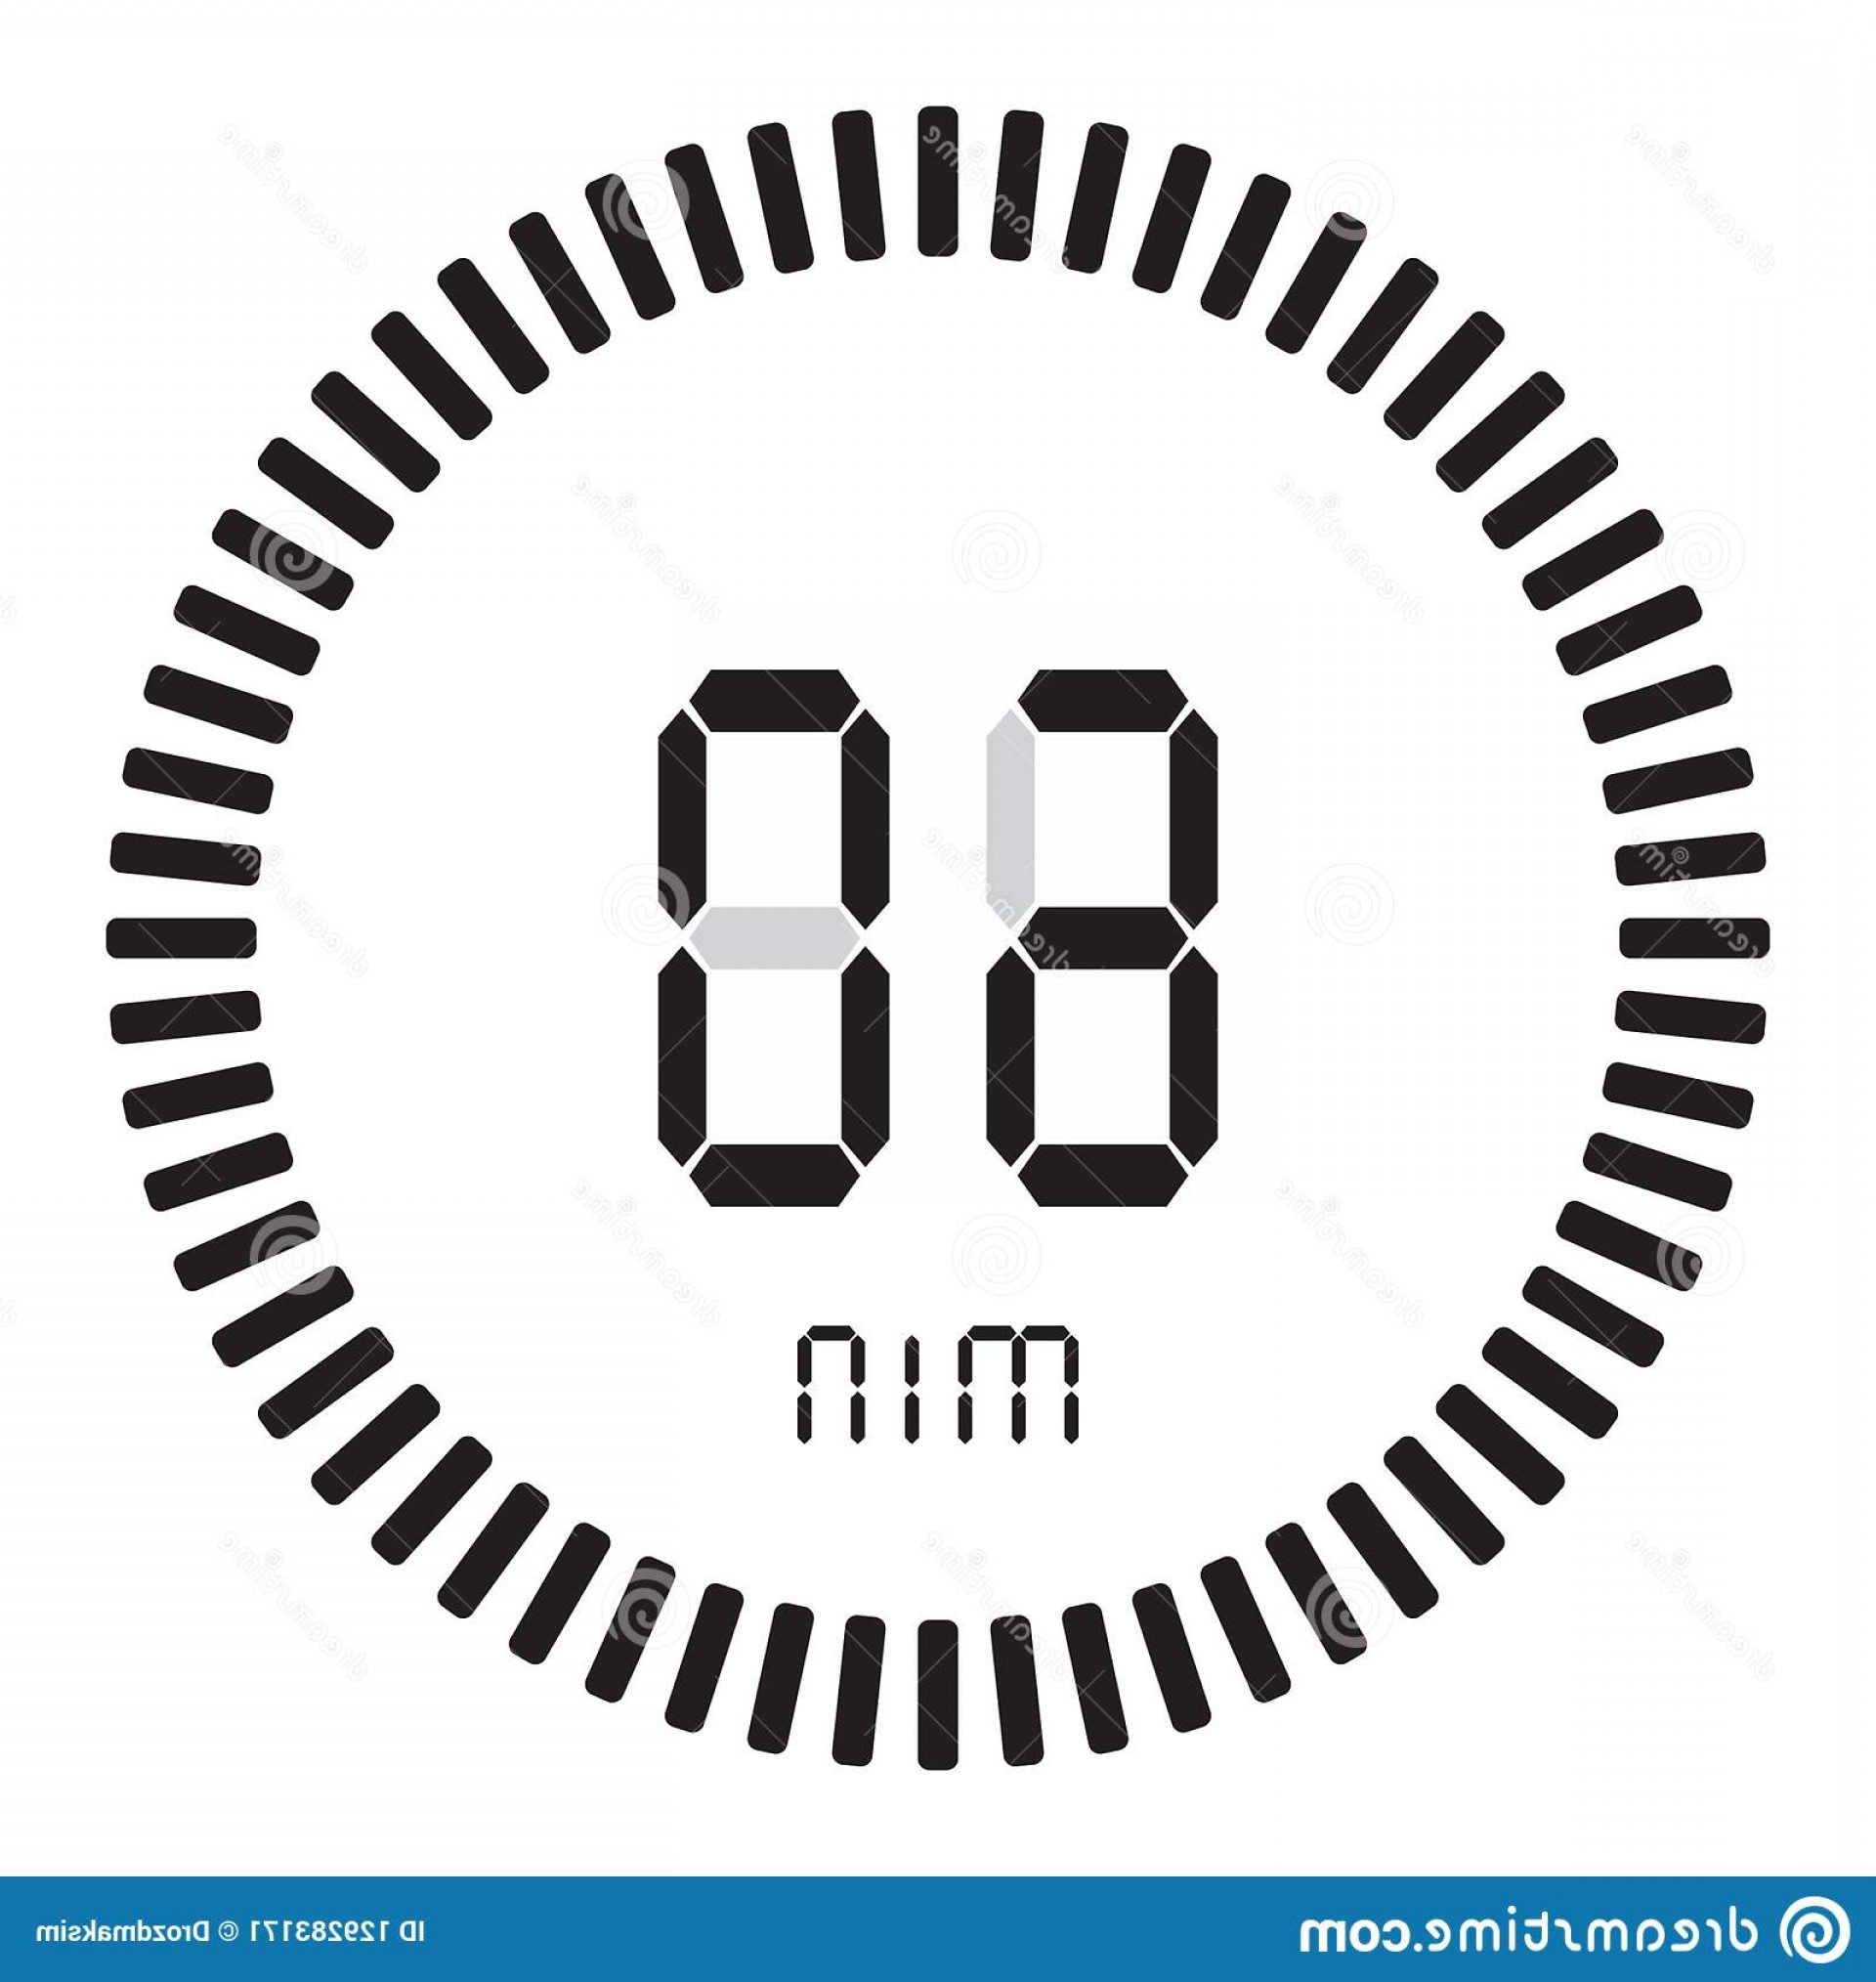 Stop Watch Vector Ai File: Digital Timer Minutes Hour Electronic Stopwatch Gradient Dial Starting Vector Icon Clock Watch Timer Digital Image